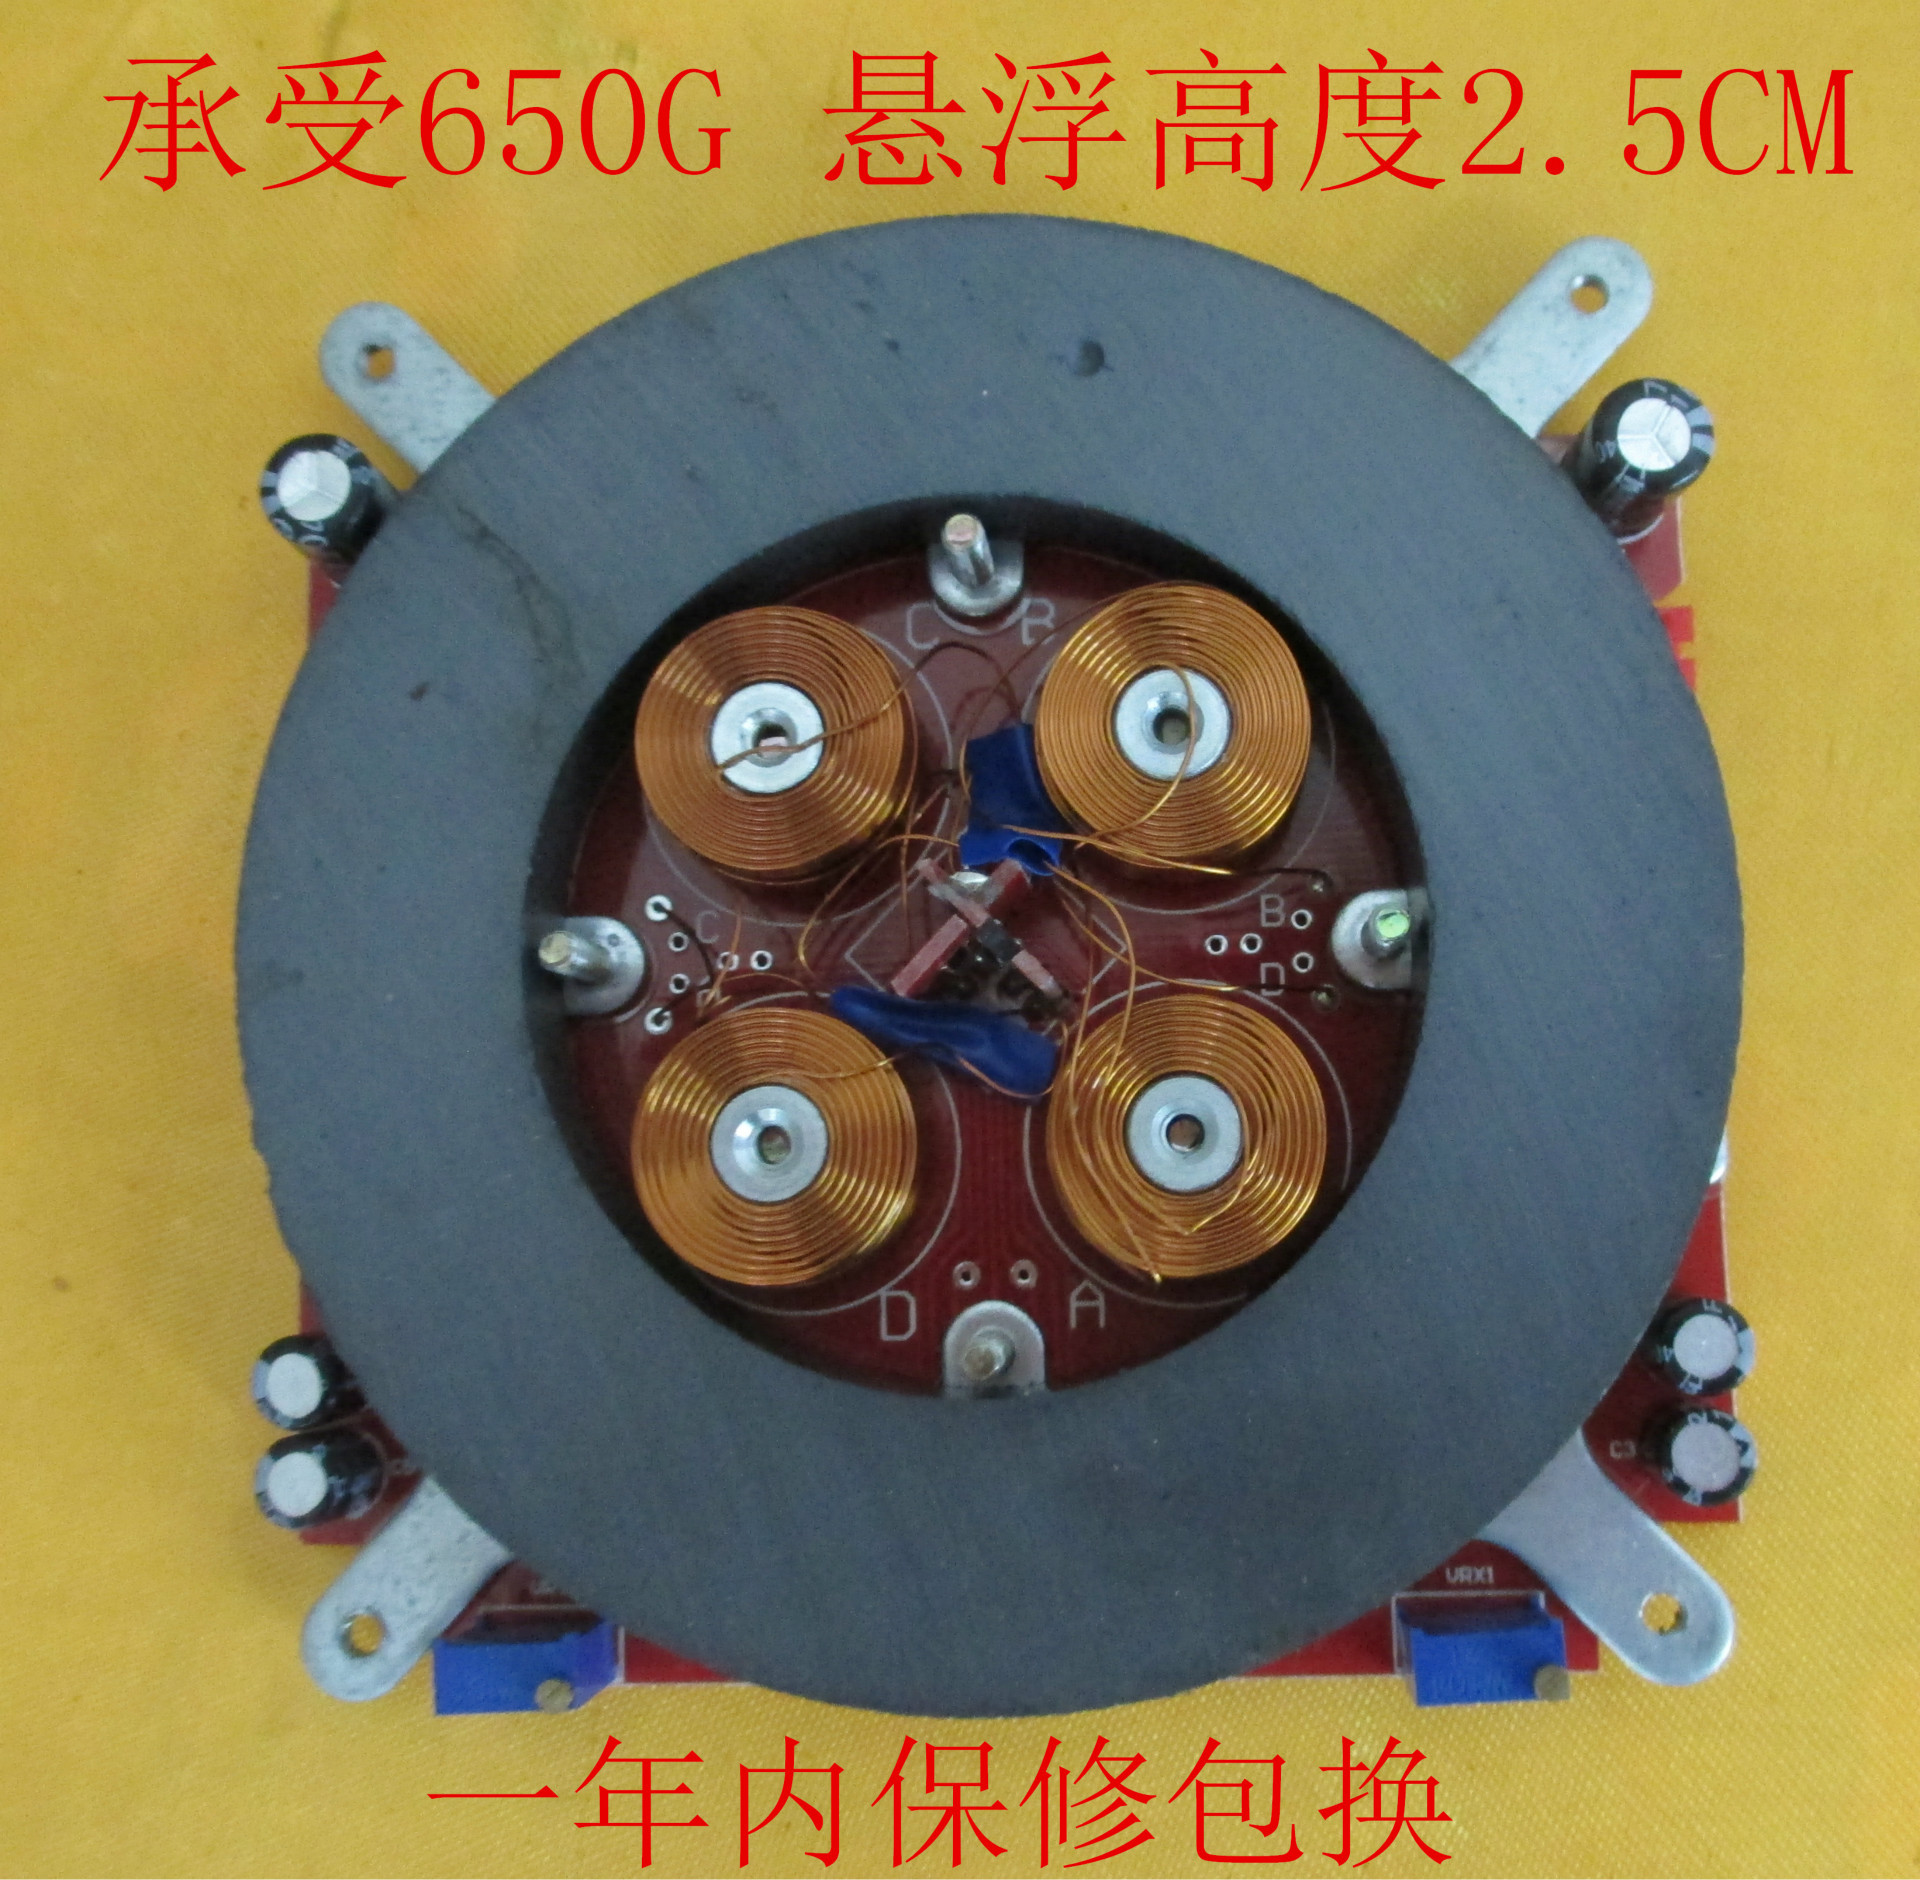 2.5cm Suspension Module of Stand 500g Maglev System DIY Magnetic Levitation Module module amenability of banach algebras